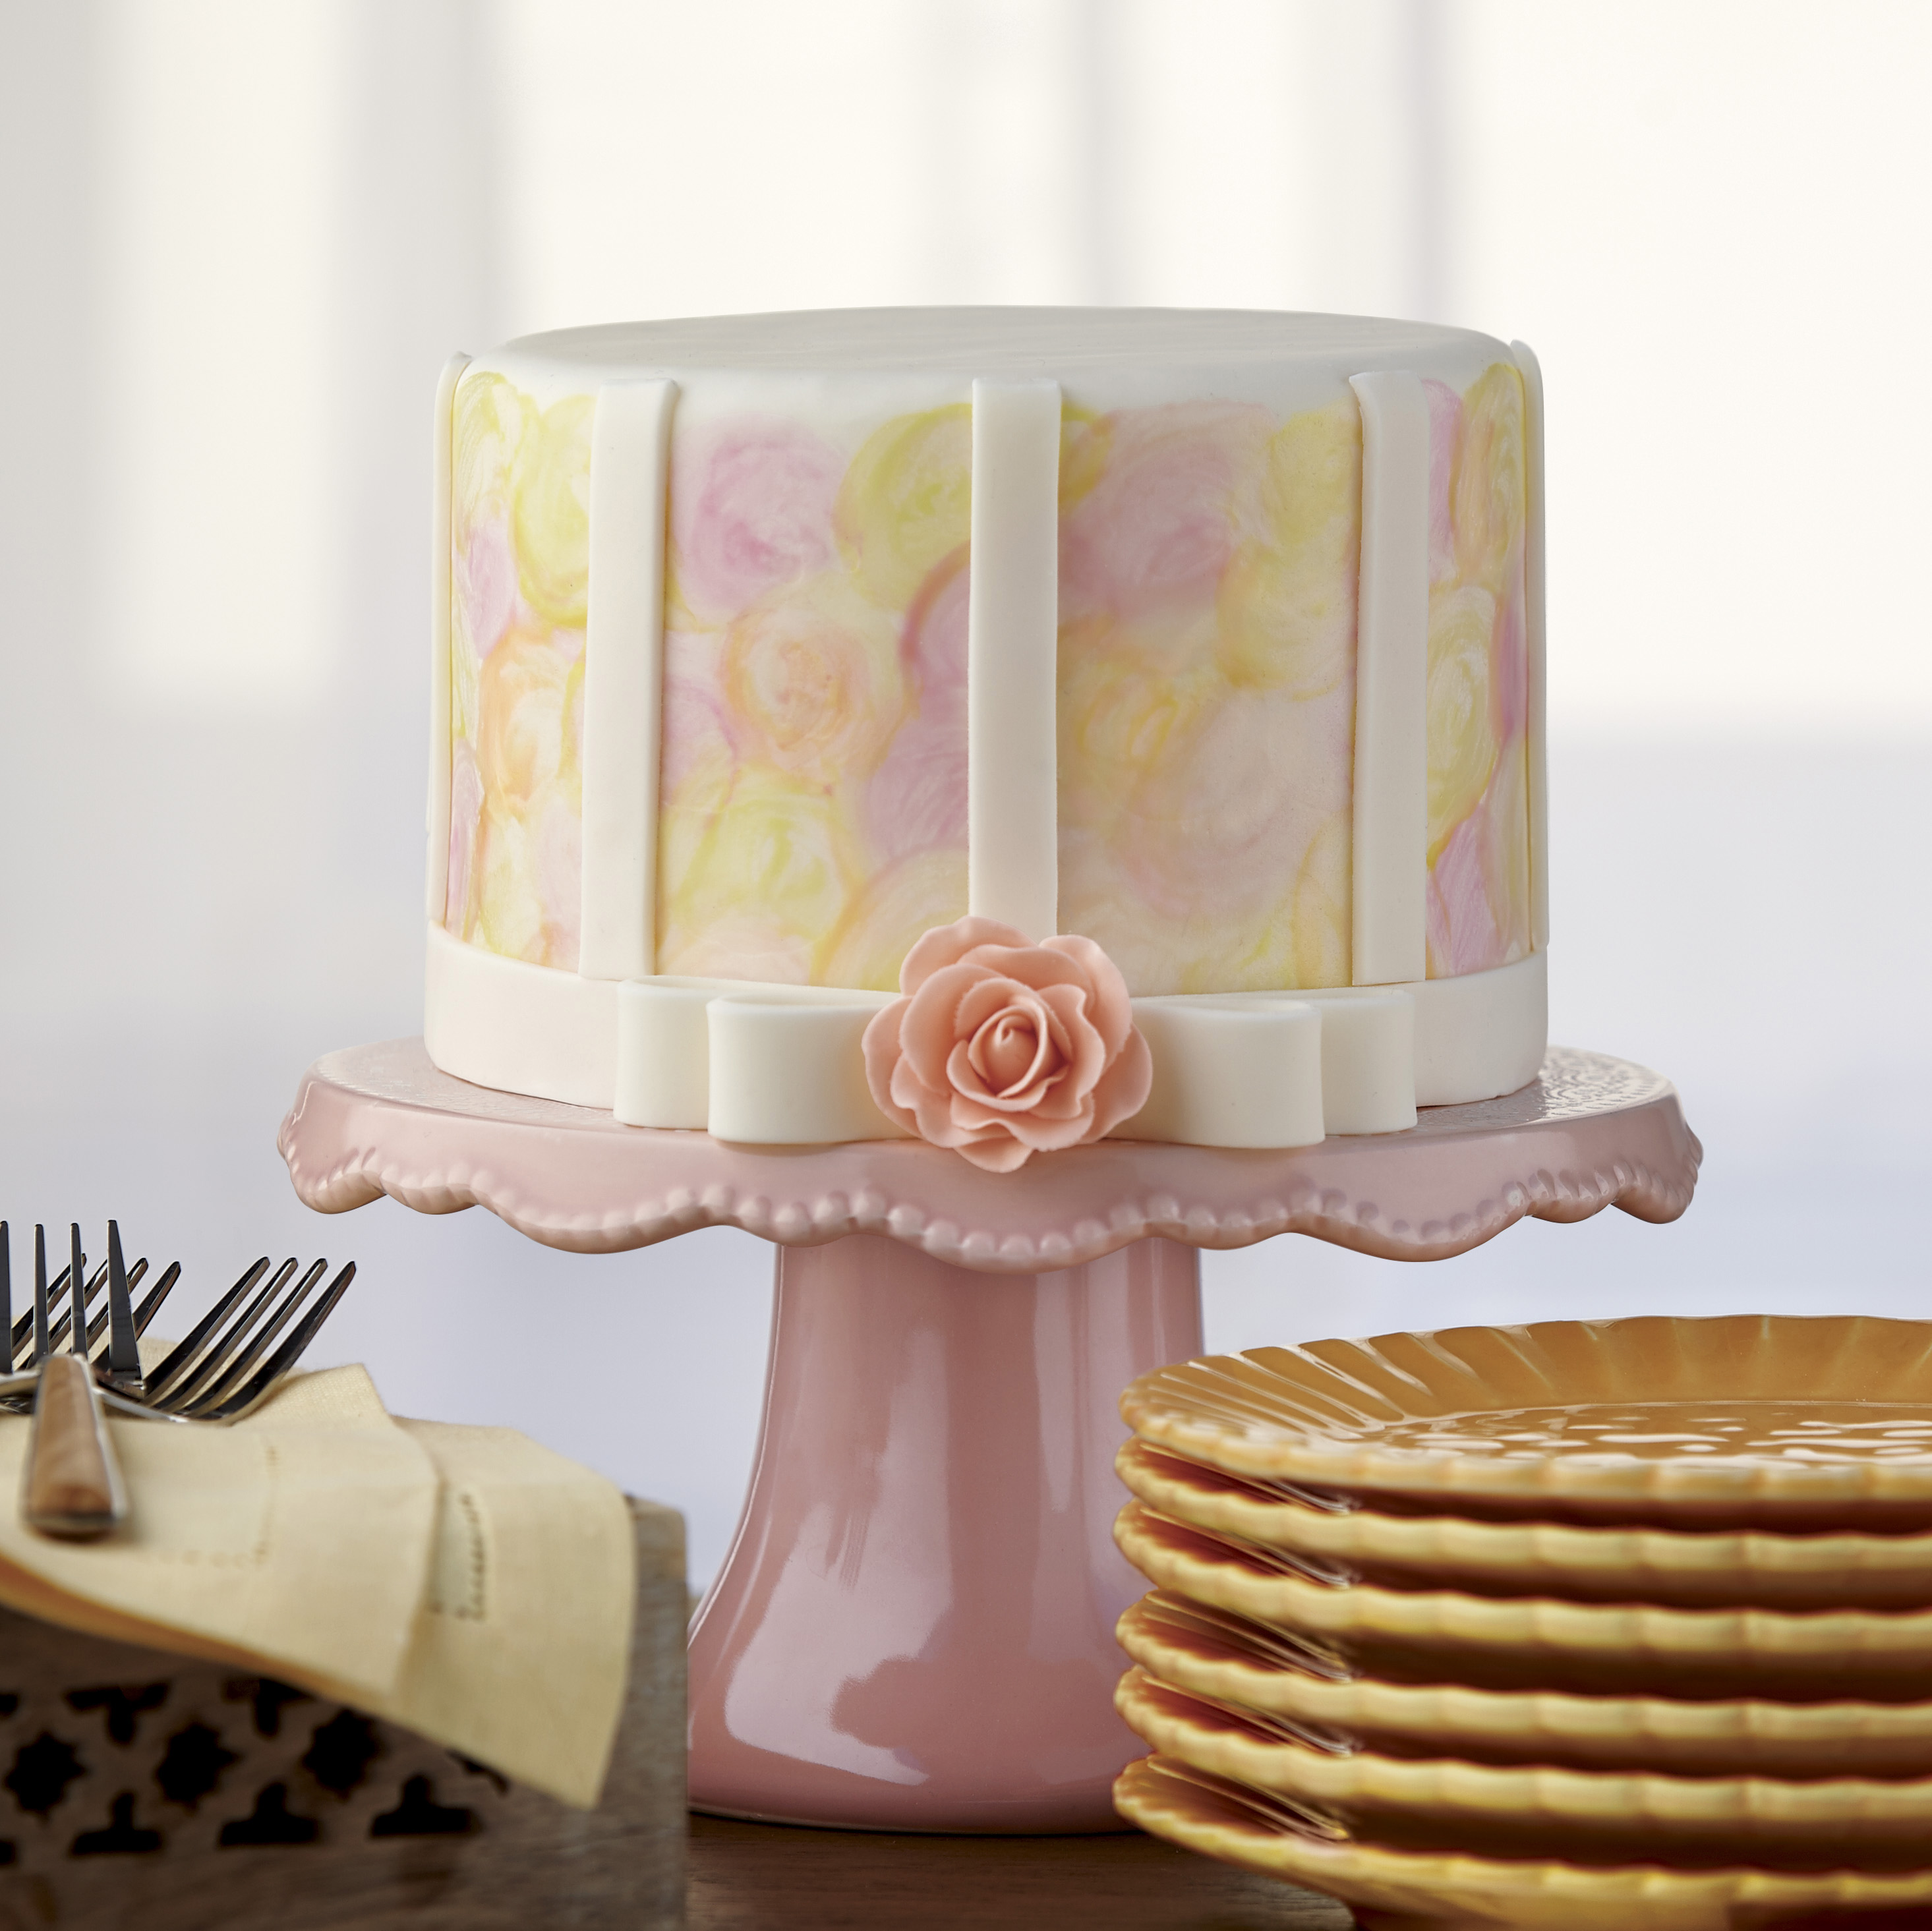 Cake Decorating Gun By Wilton : Learn to decorate a cake with a Wilton Method Class?